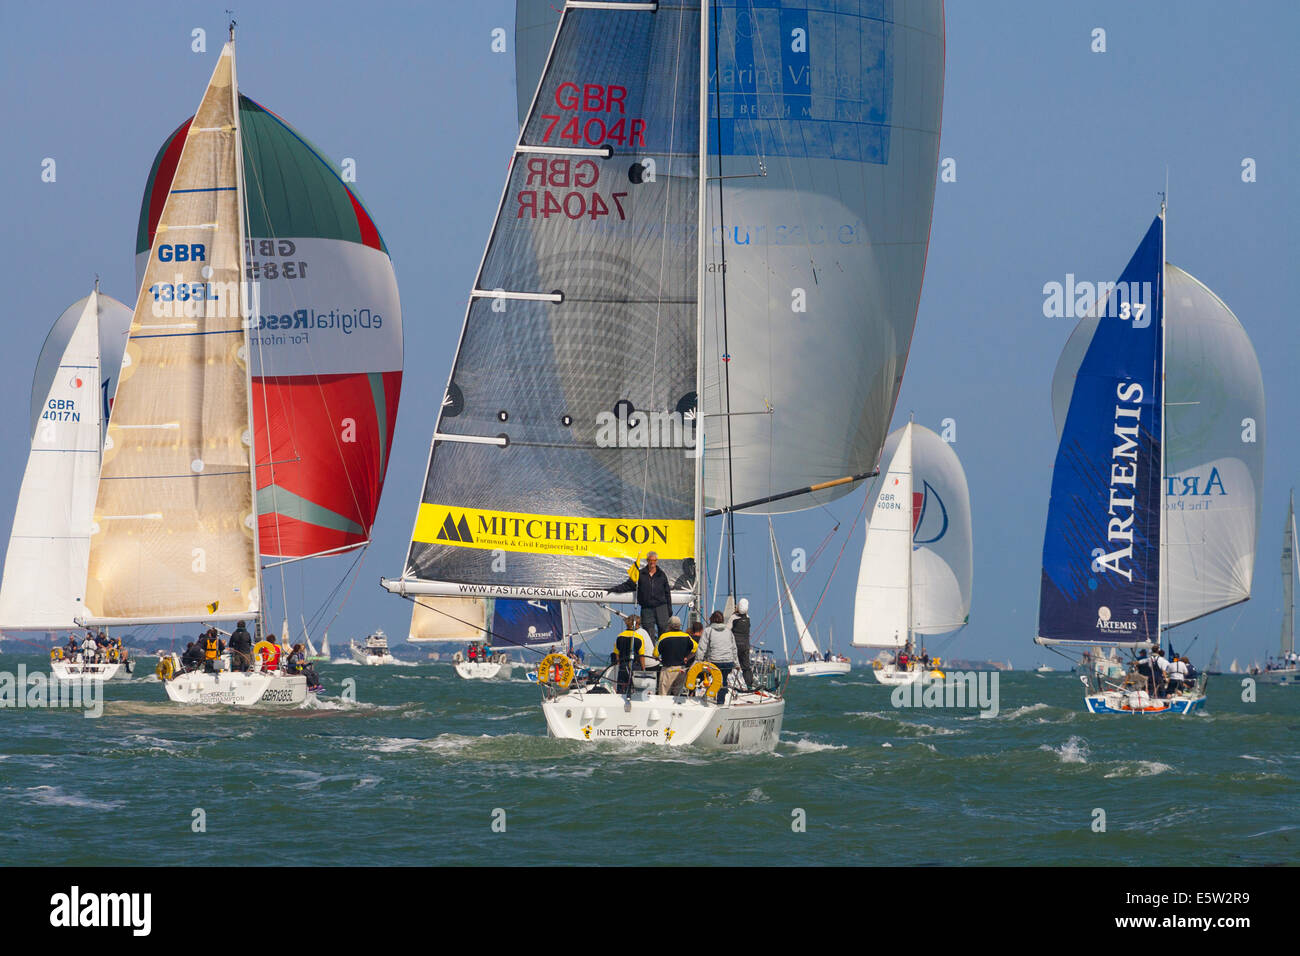 Cowes, Isle of Wight, England, UK. 6th August, 2014. Glorious sunshine today at Cowes Week.  Since 1826 Cowes Week - Stock Image